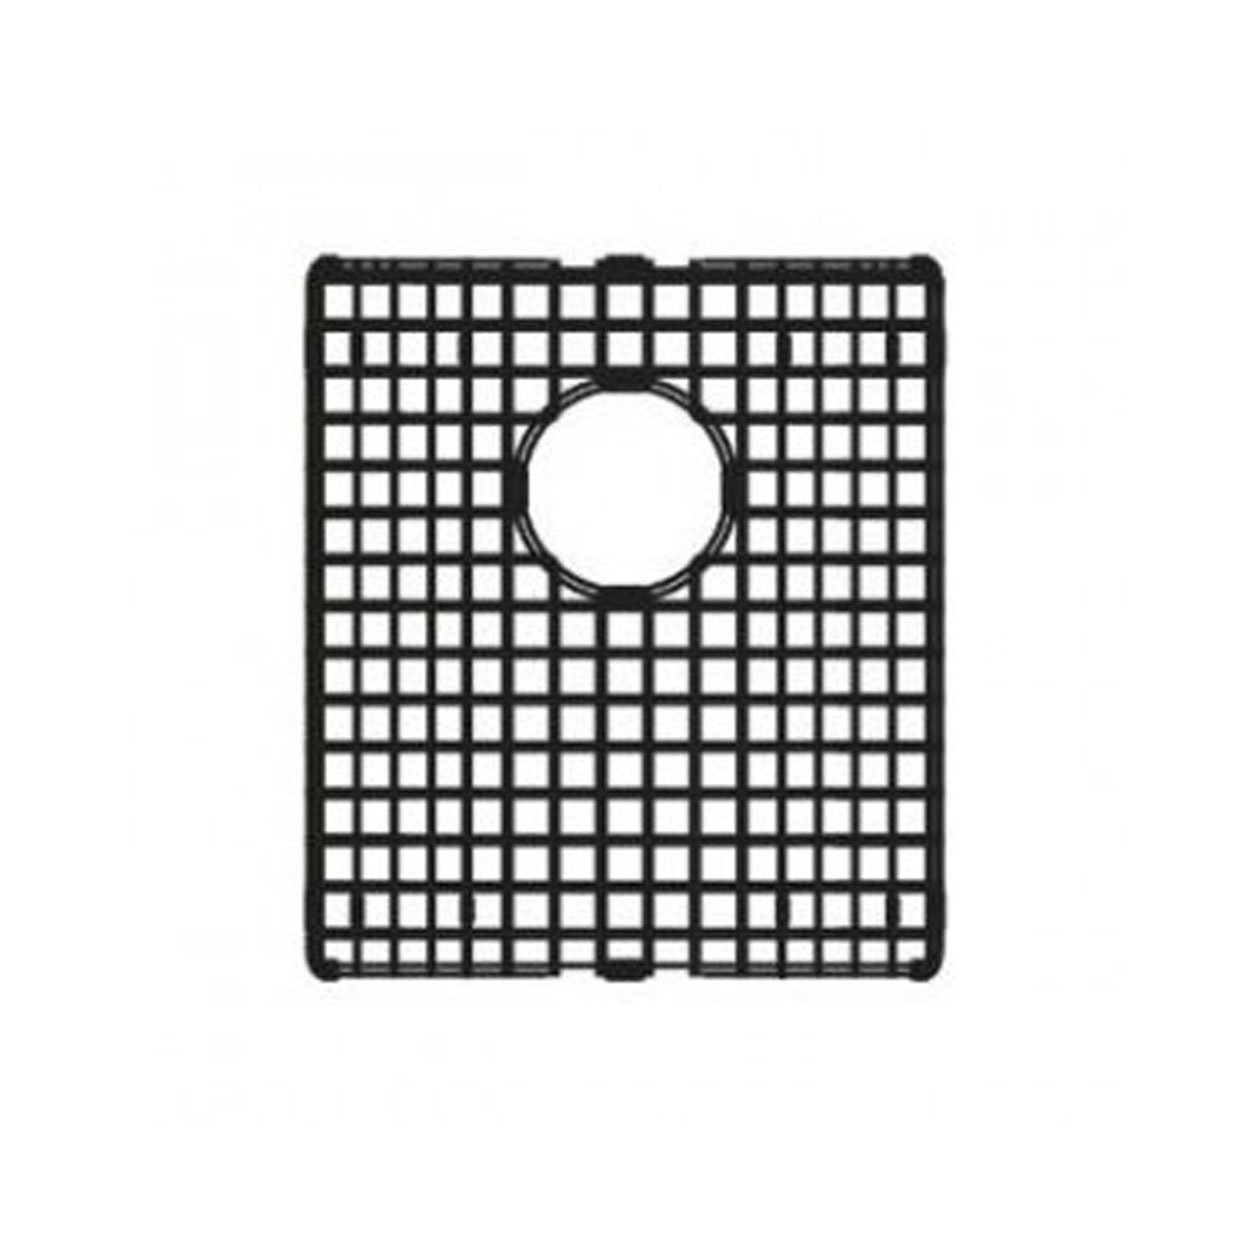 Franke FH16-36S Professional Series Bottom Sink Grid for PSX120339, Stainless Steel by Franke (Image #1)